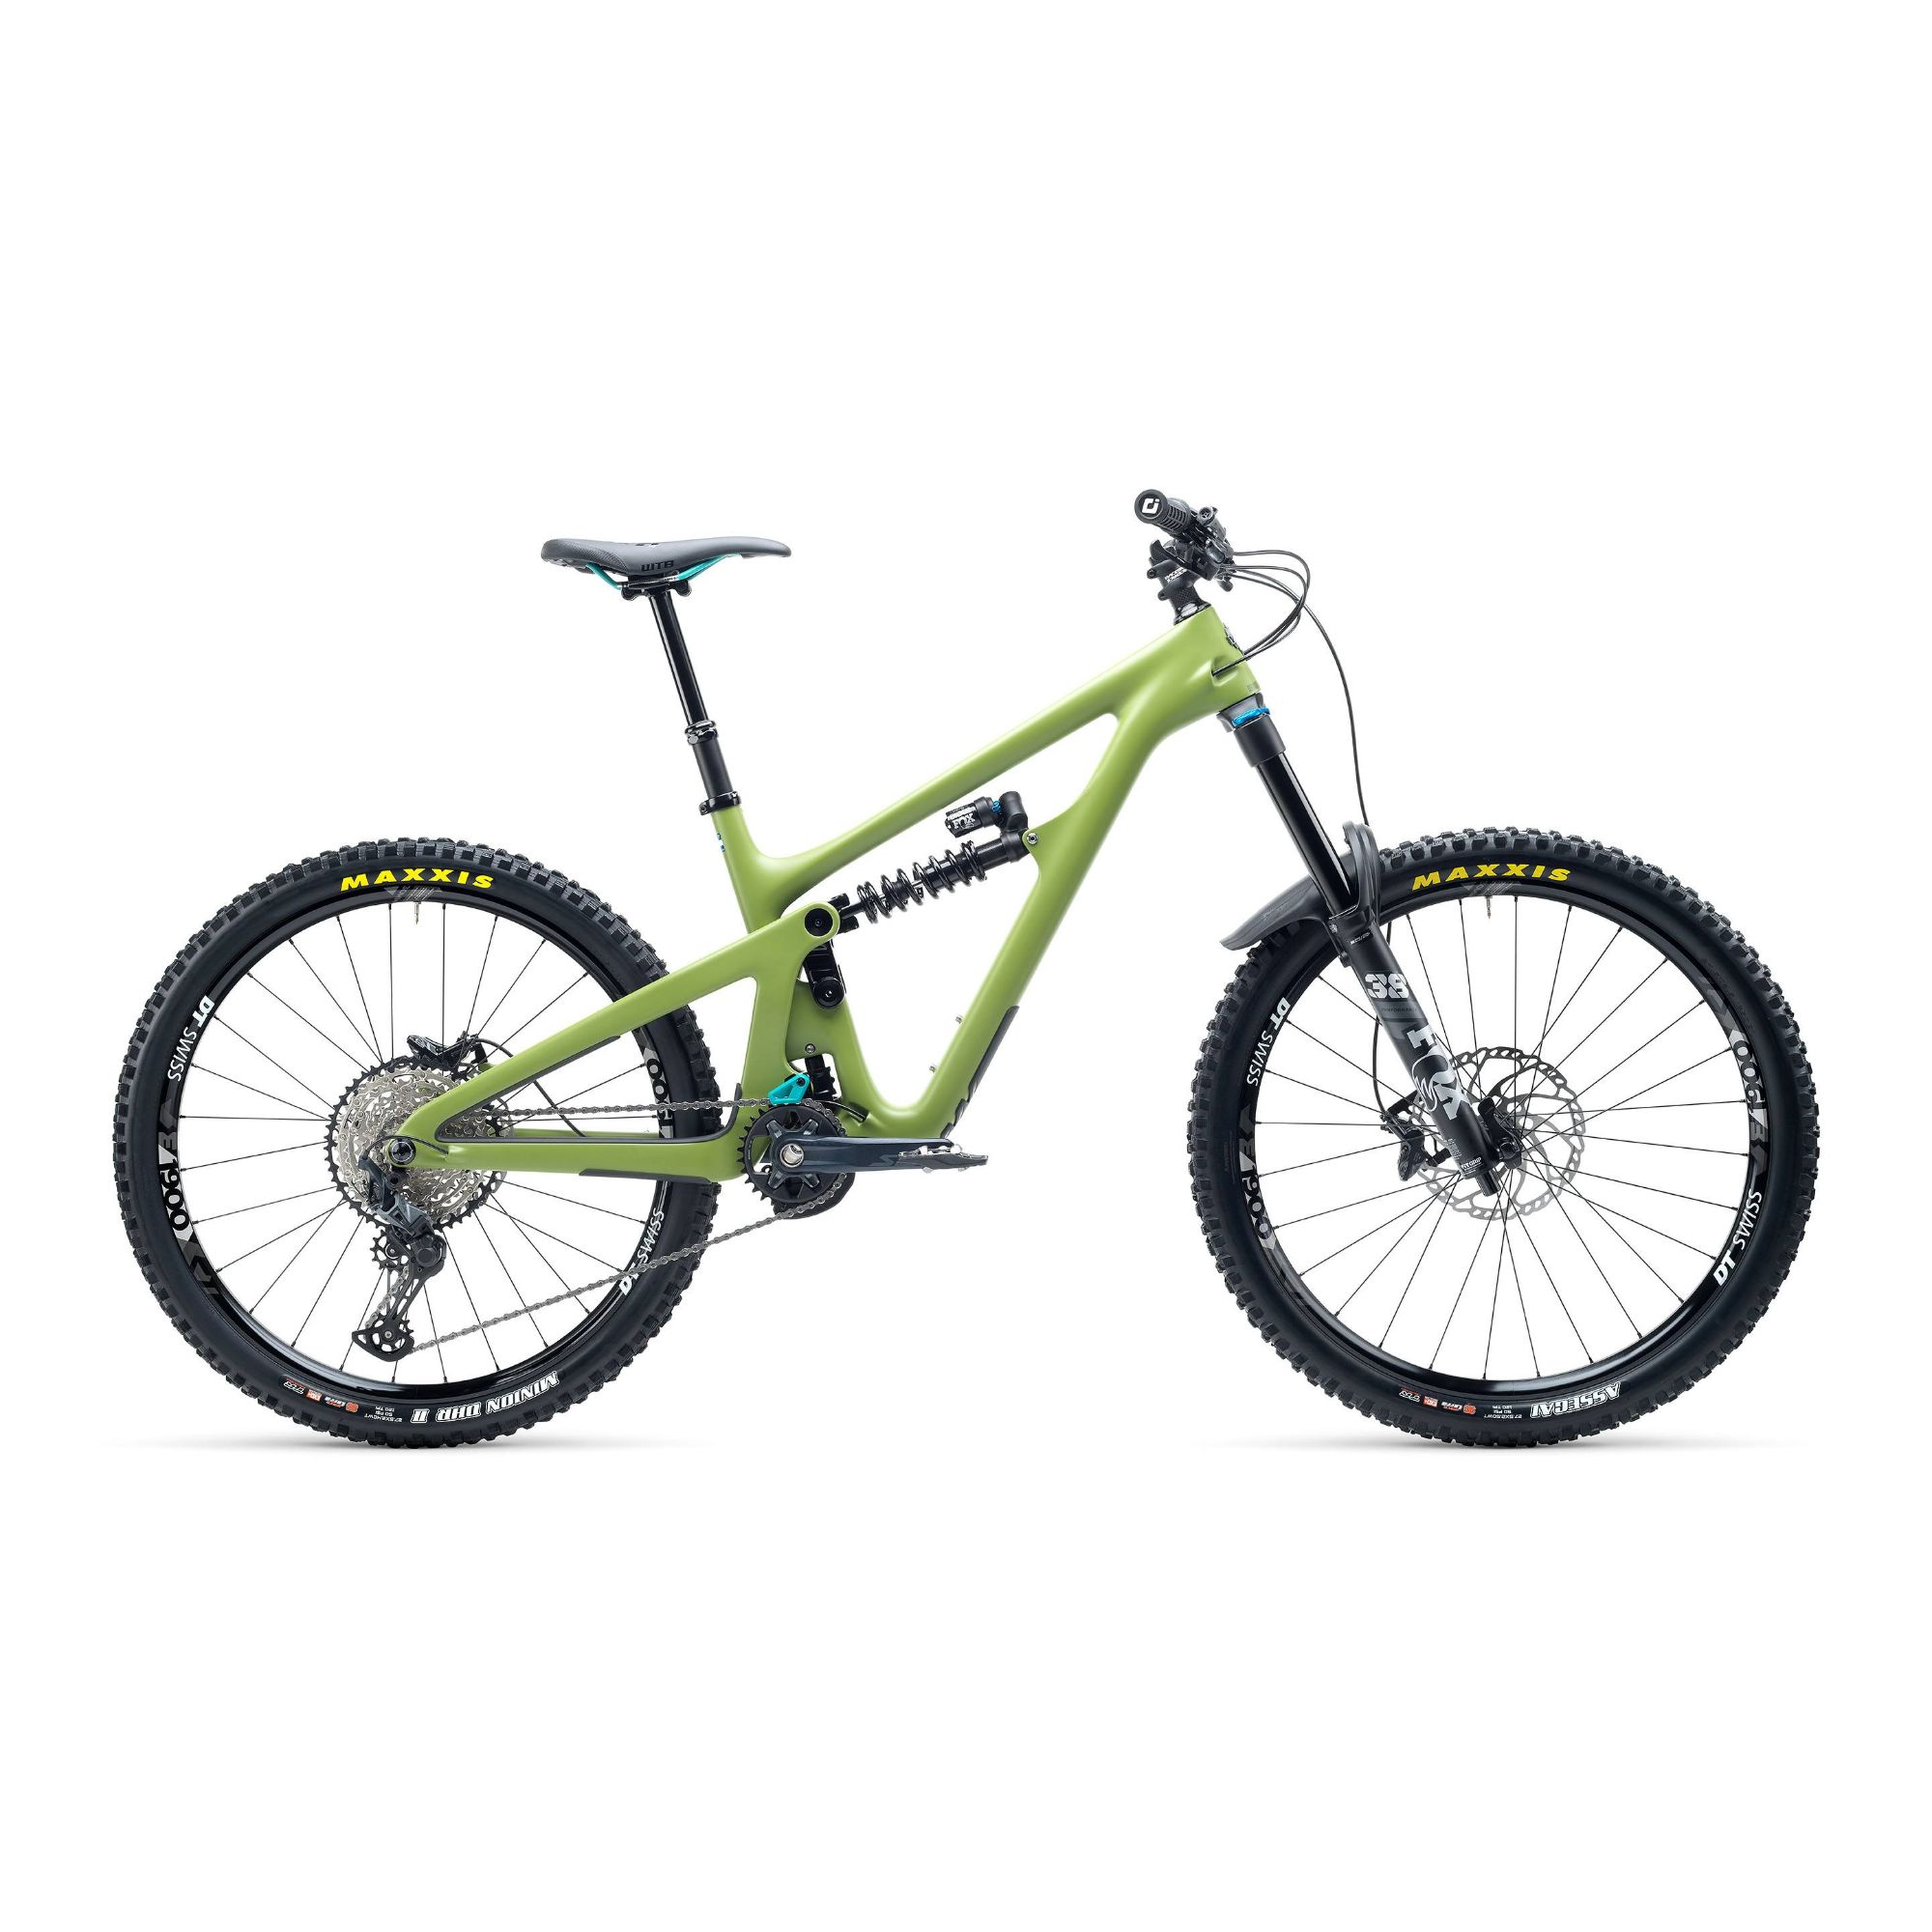 Yeti SB165 C Series C1 27.5 SLX Carbon Mountain Bike 2021 Moss Green